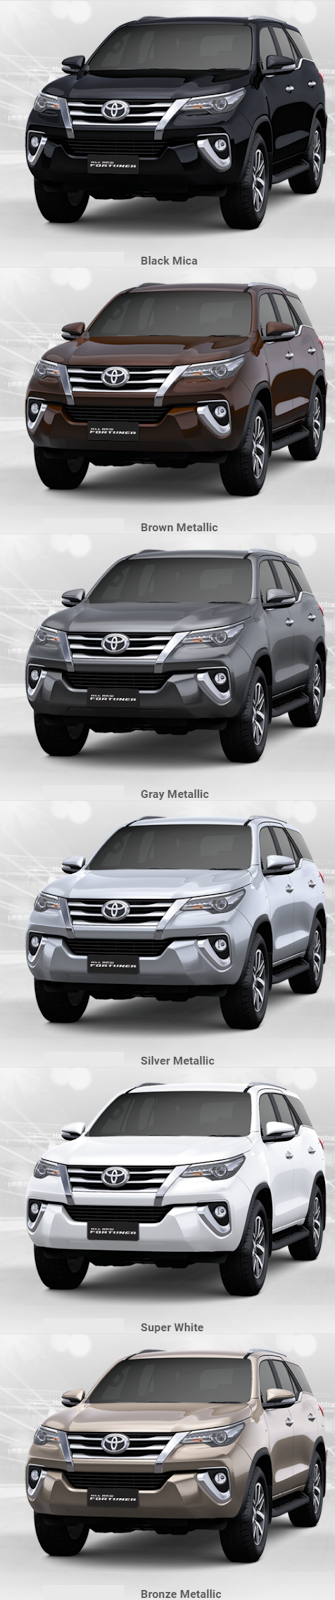 warna-mobil-all-new-fortuner